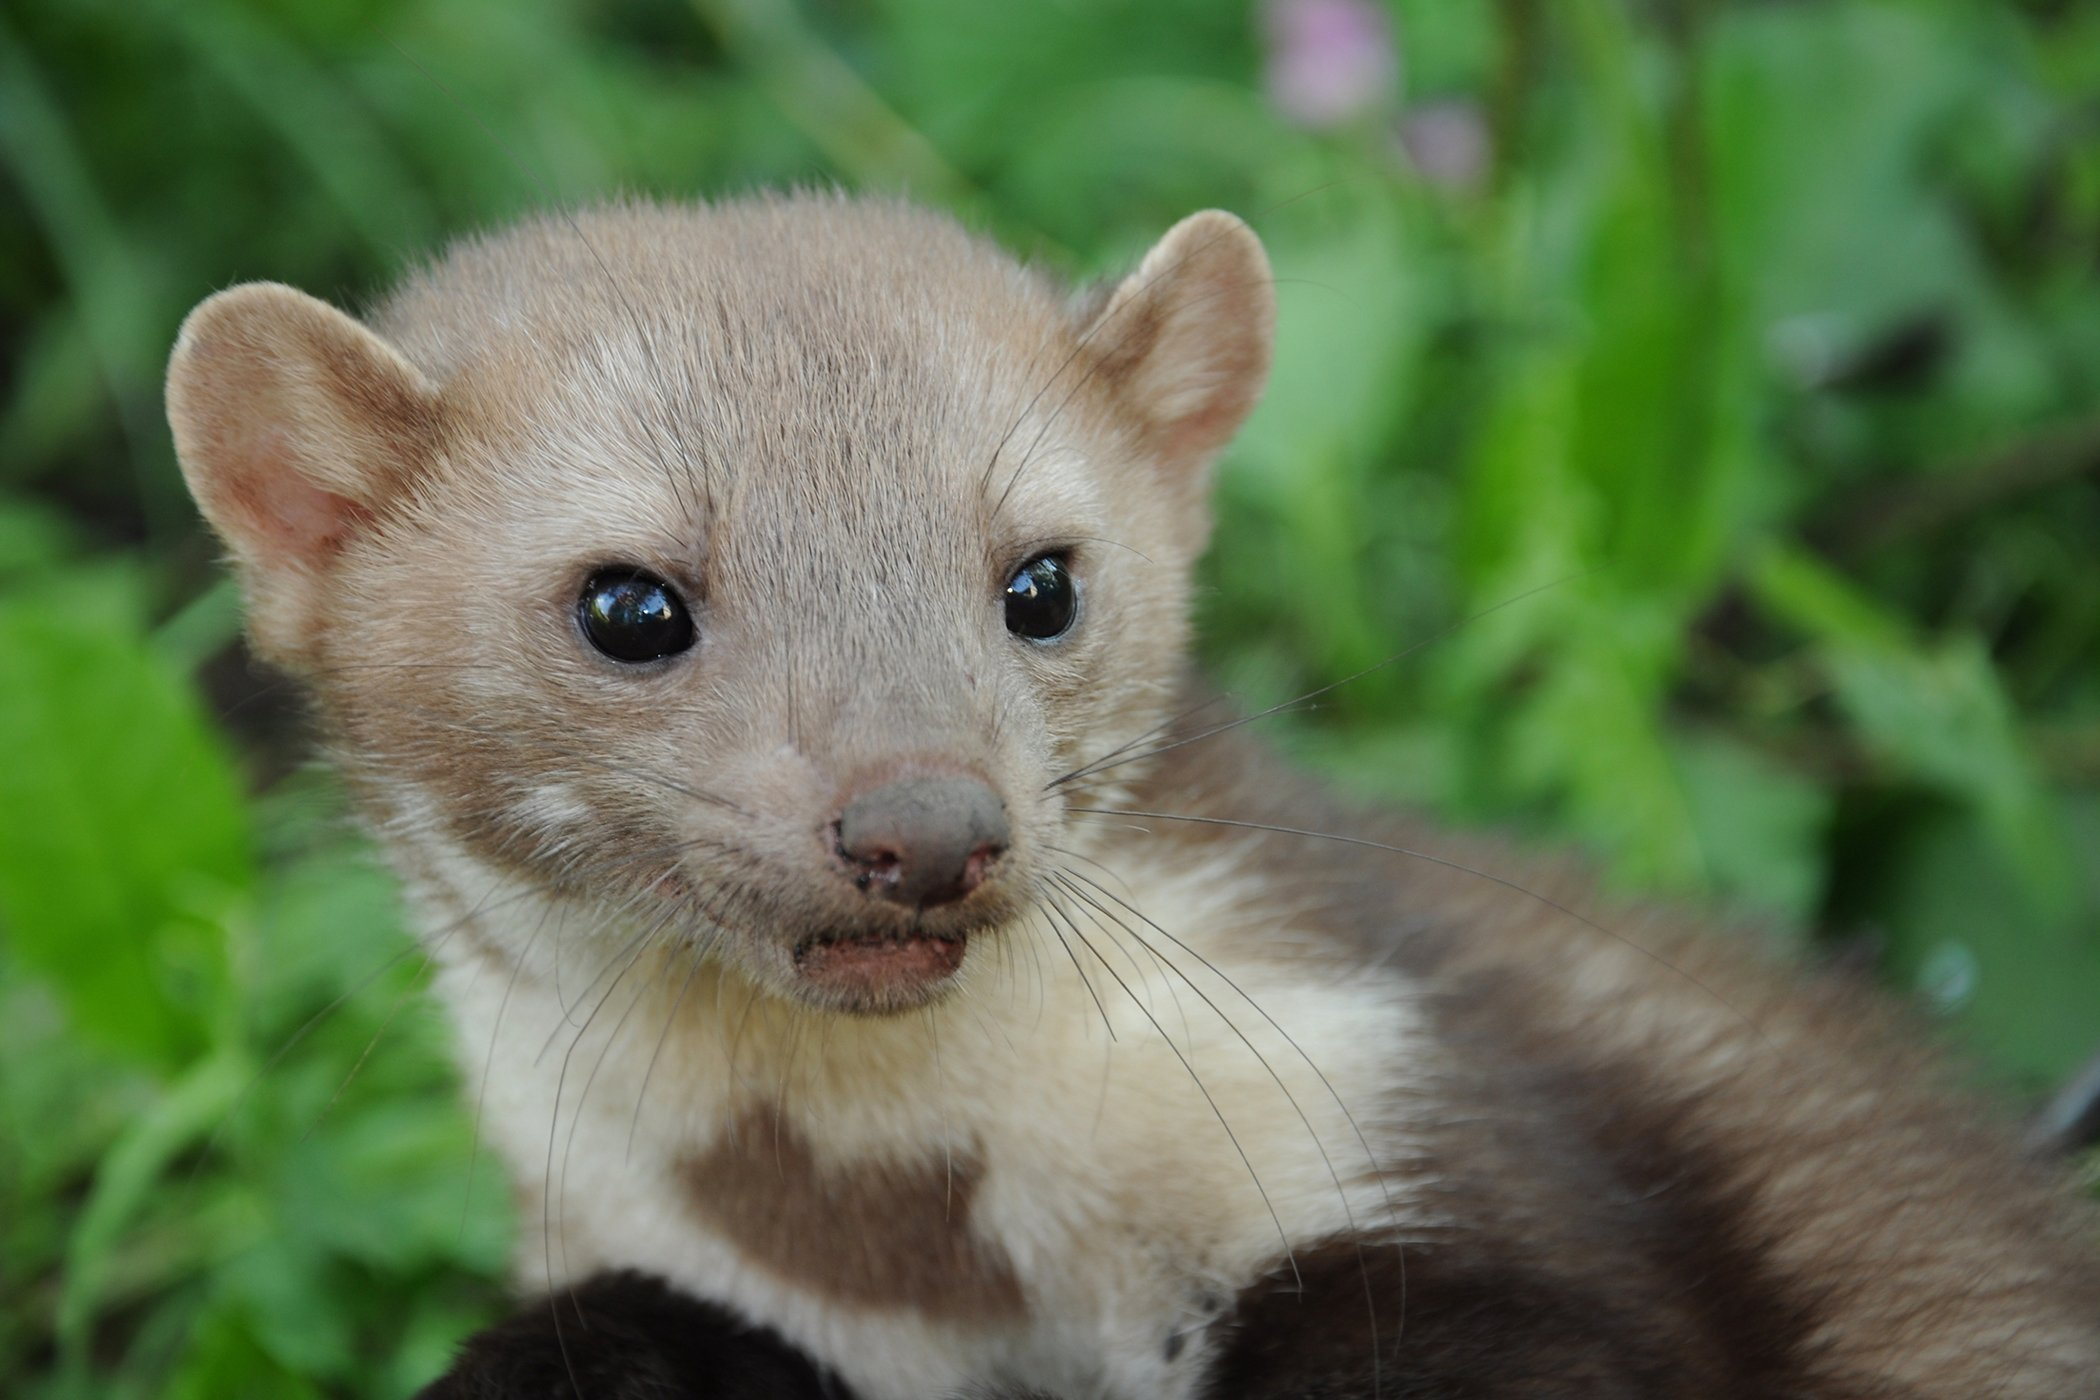 Urinary Tract Stones in Ferrets